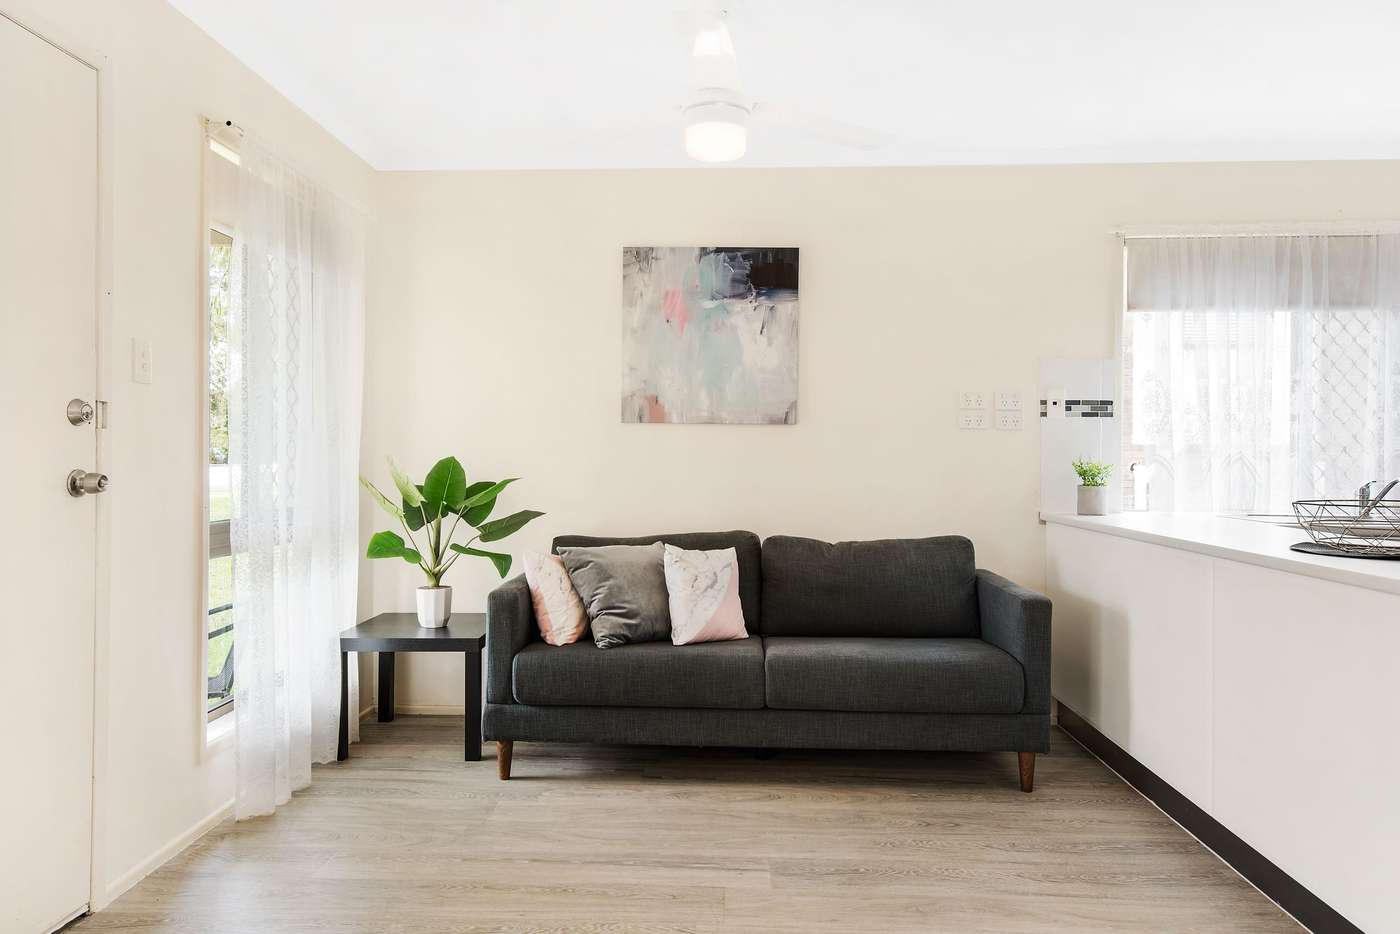 Main view of Homely house listing, 19 May Street, Mango Hill QLD 4509